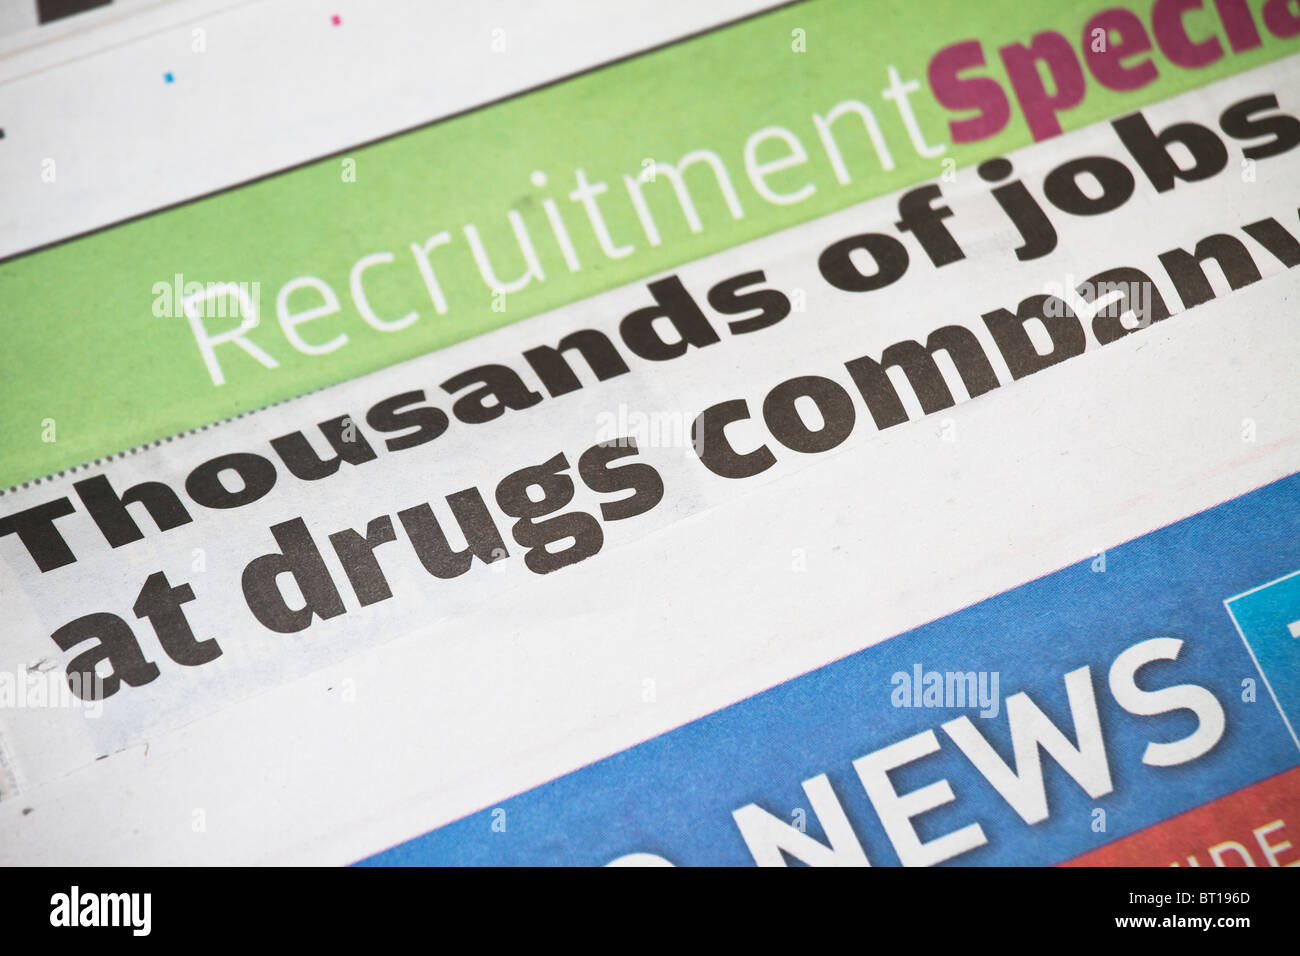 Newspaper headline about jobs crisis - Stock Image